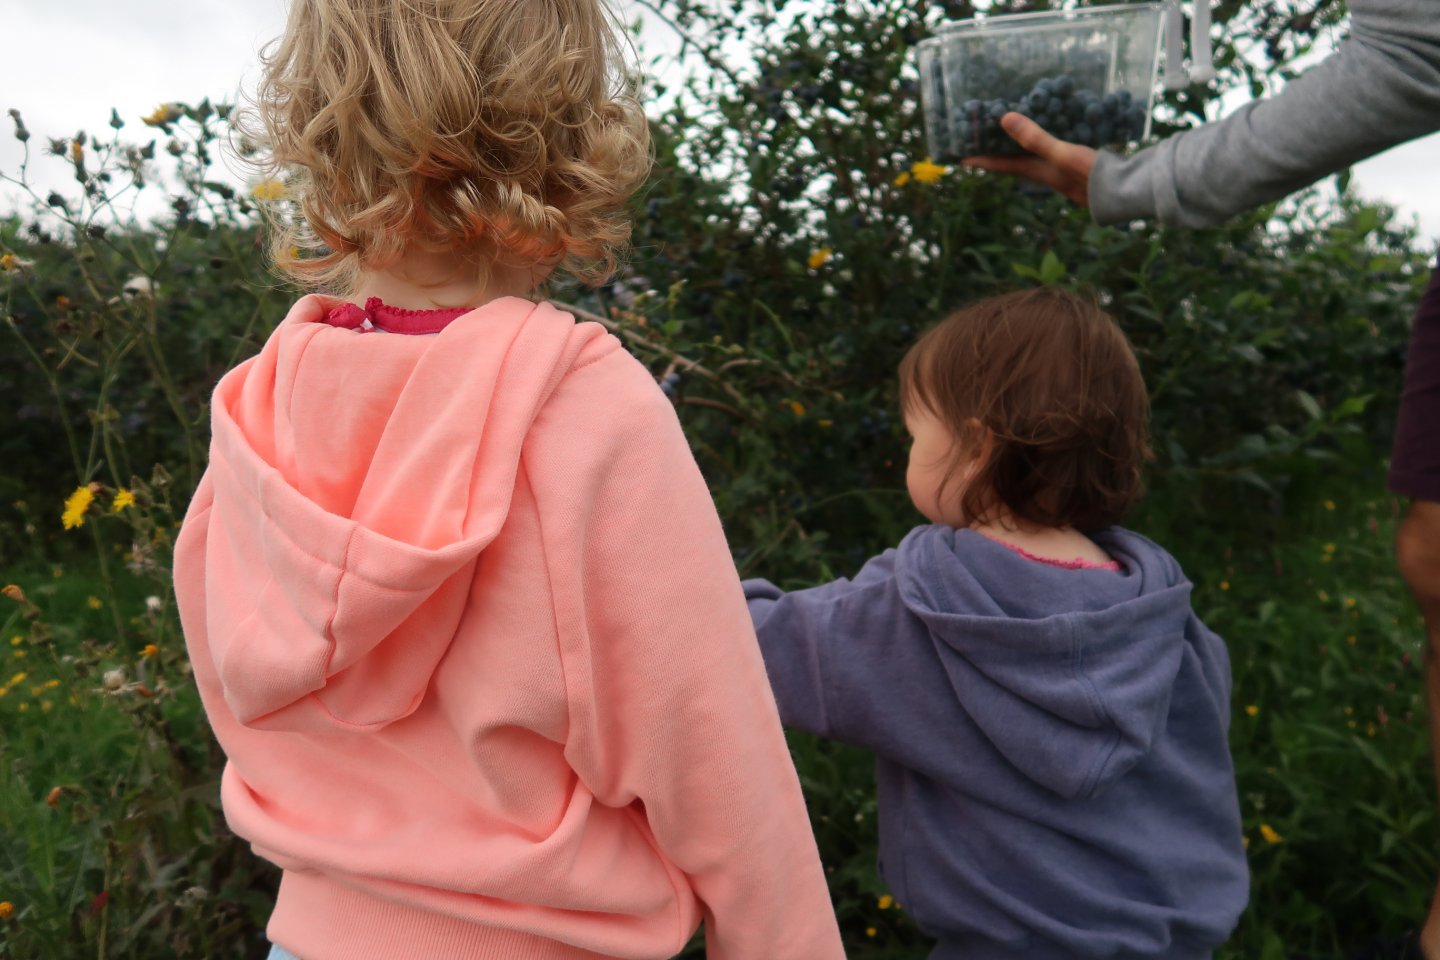 M and B pick blueberries from a bush, facing away from the camera.